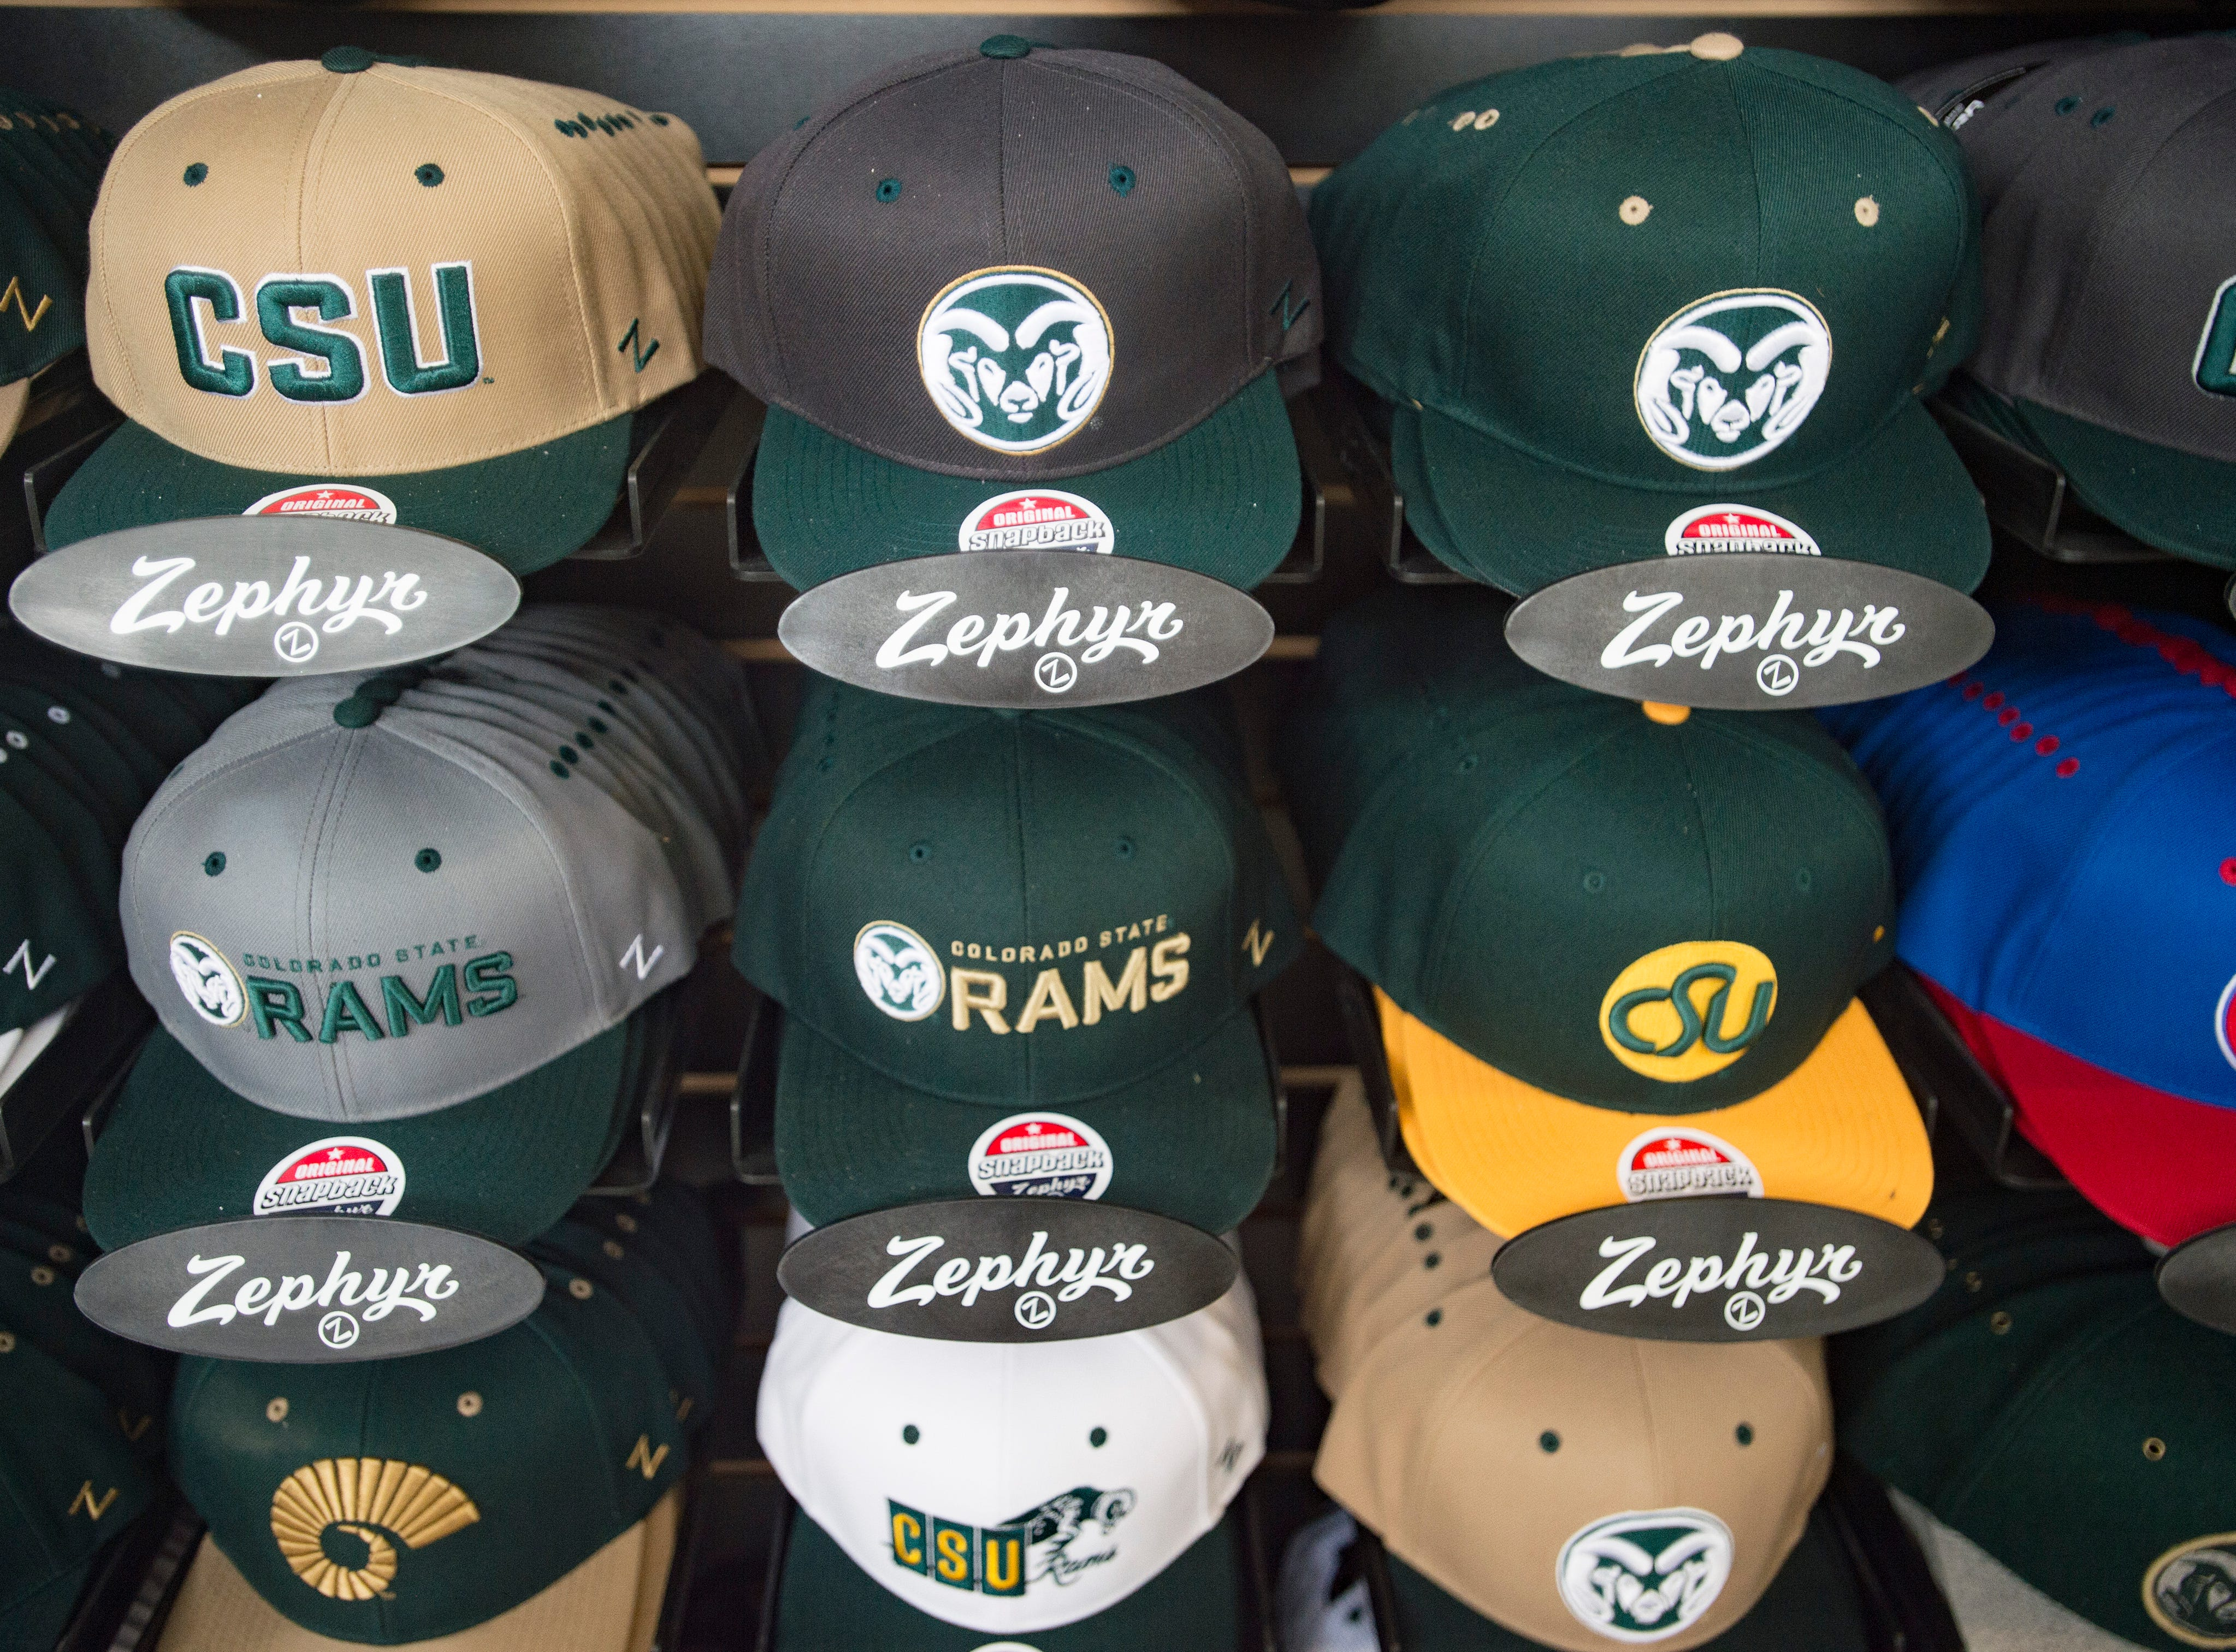 CSU apparel is on sale during an open house hosted by the Rams at Canvas Stadium on Saturday, August 4, 2018.